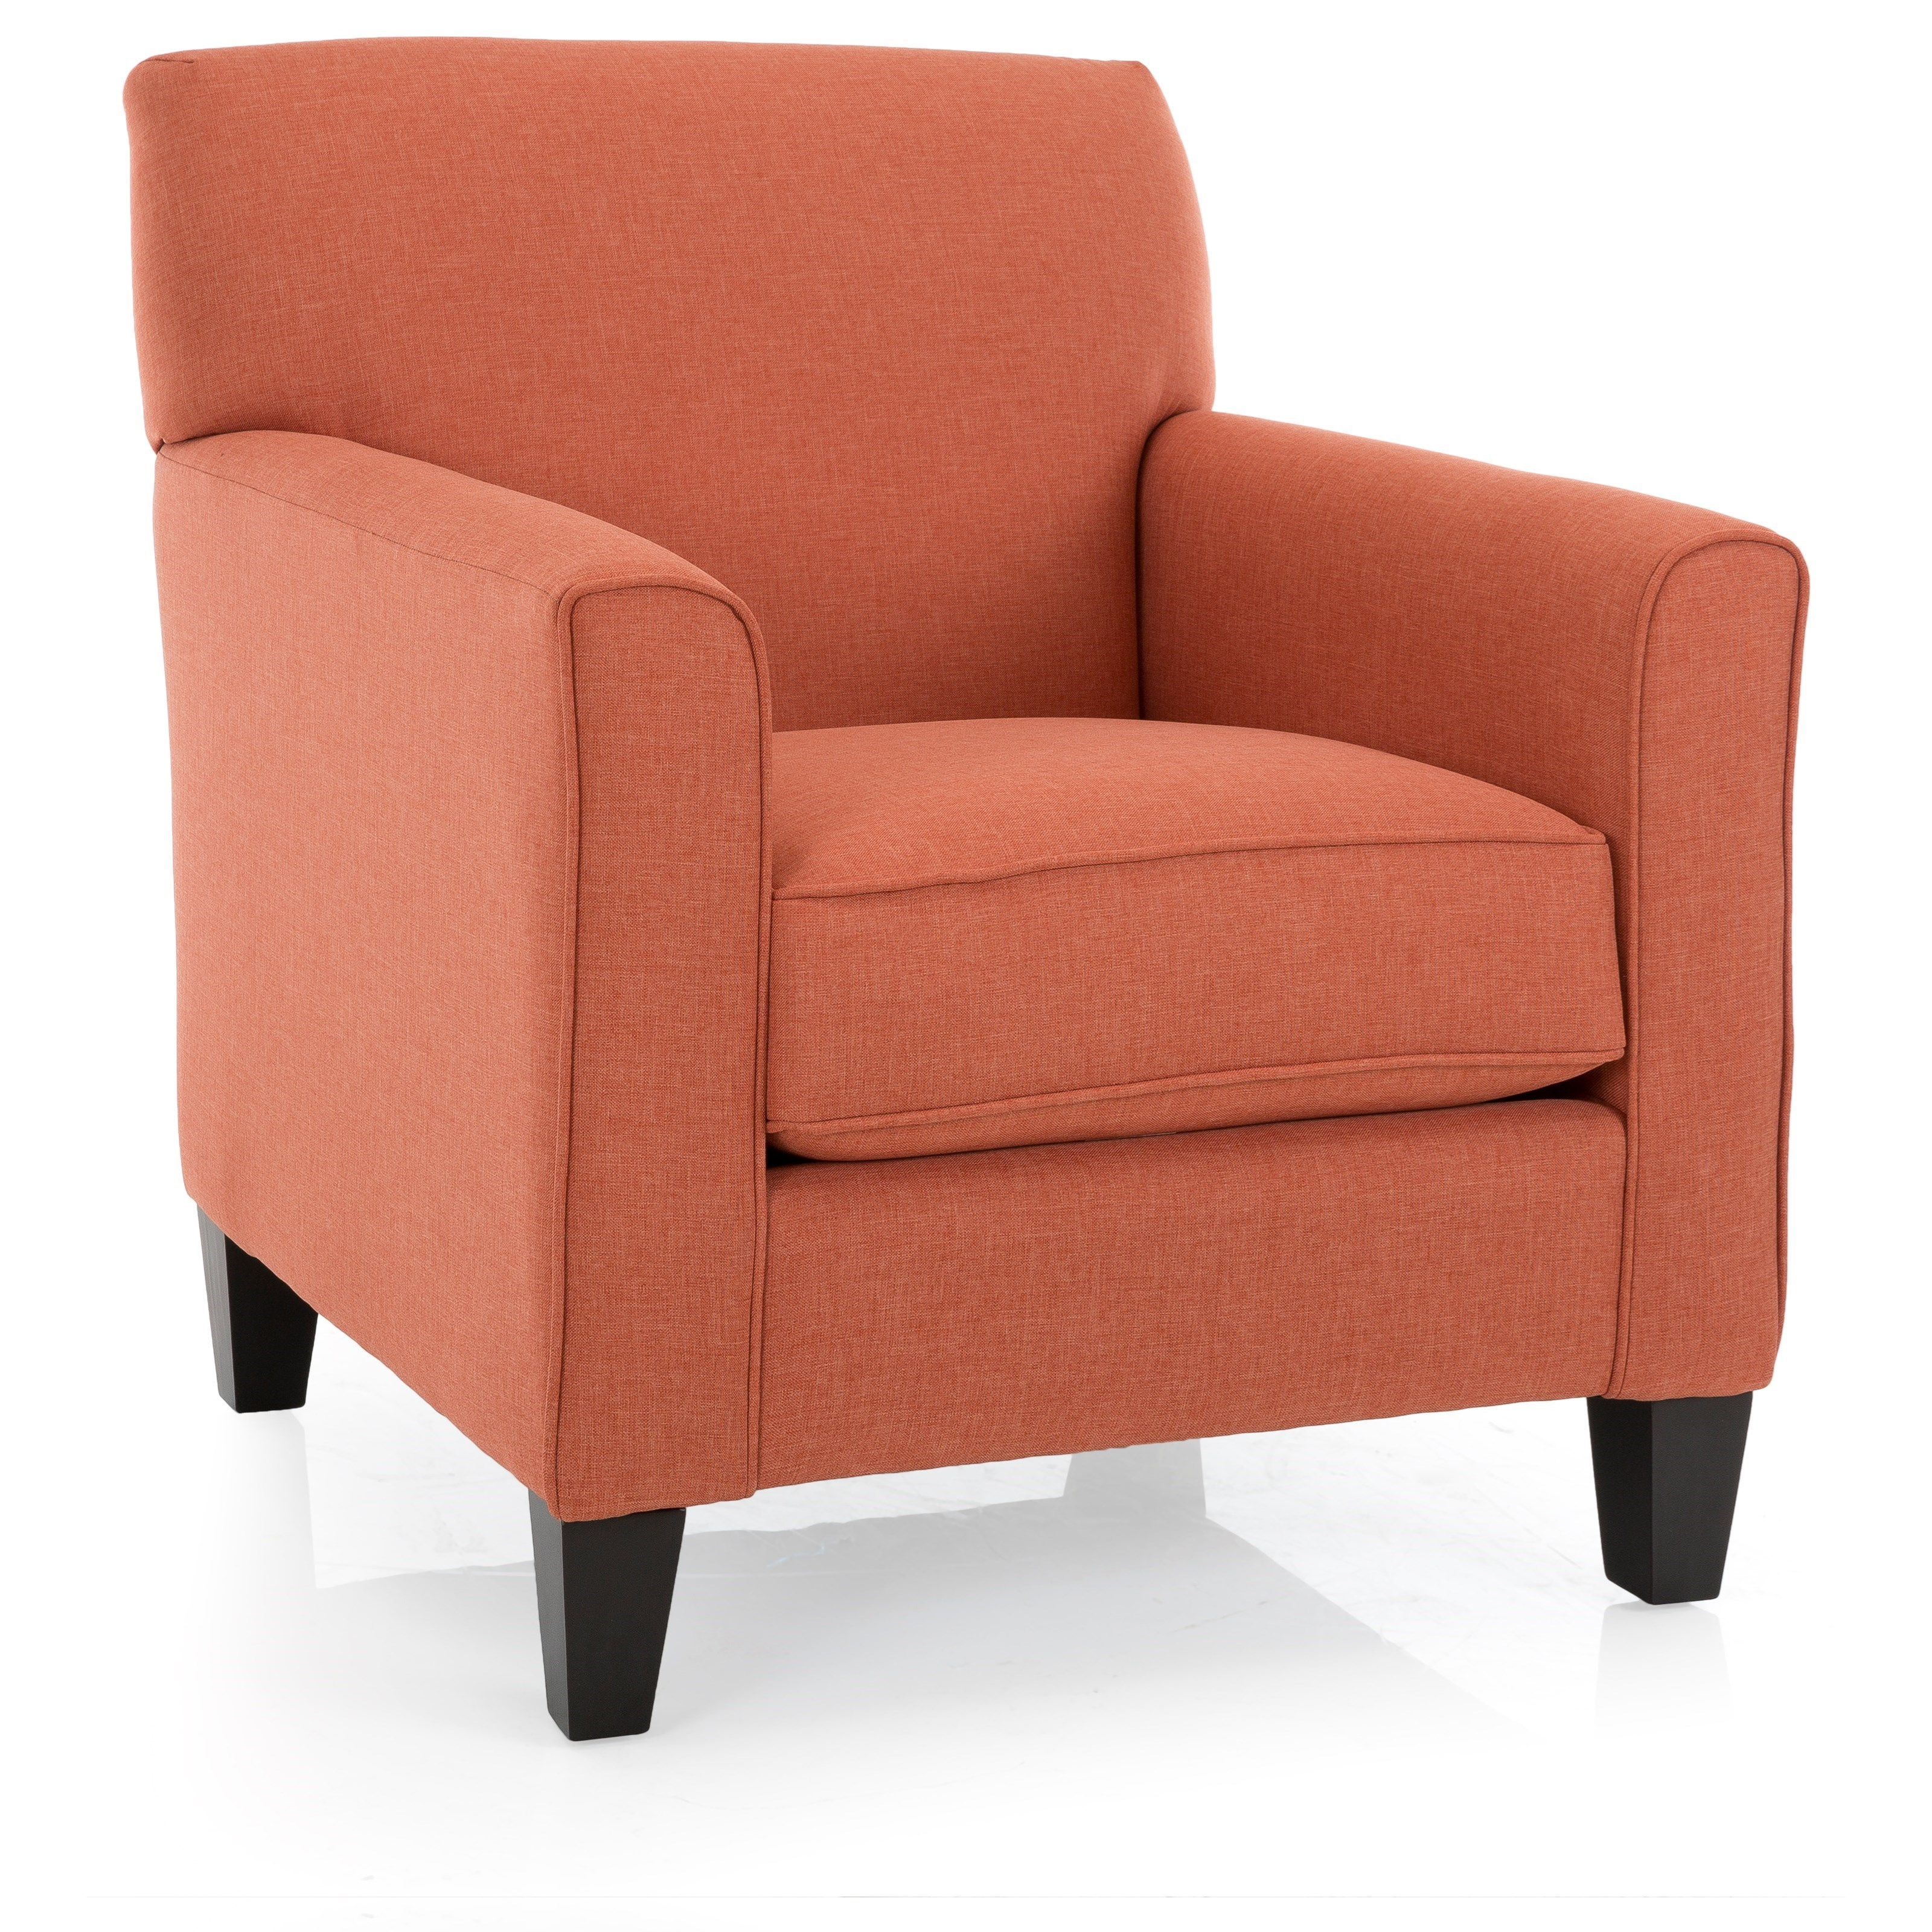 2468 Transitional Accent Chair by Decor-Rest at Rooms for Less